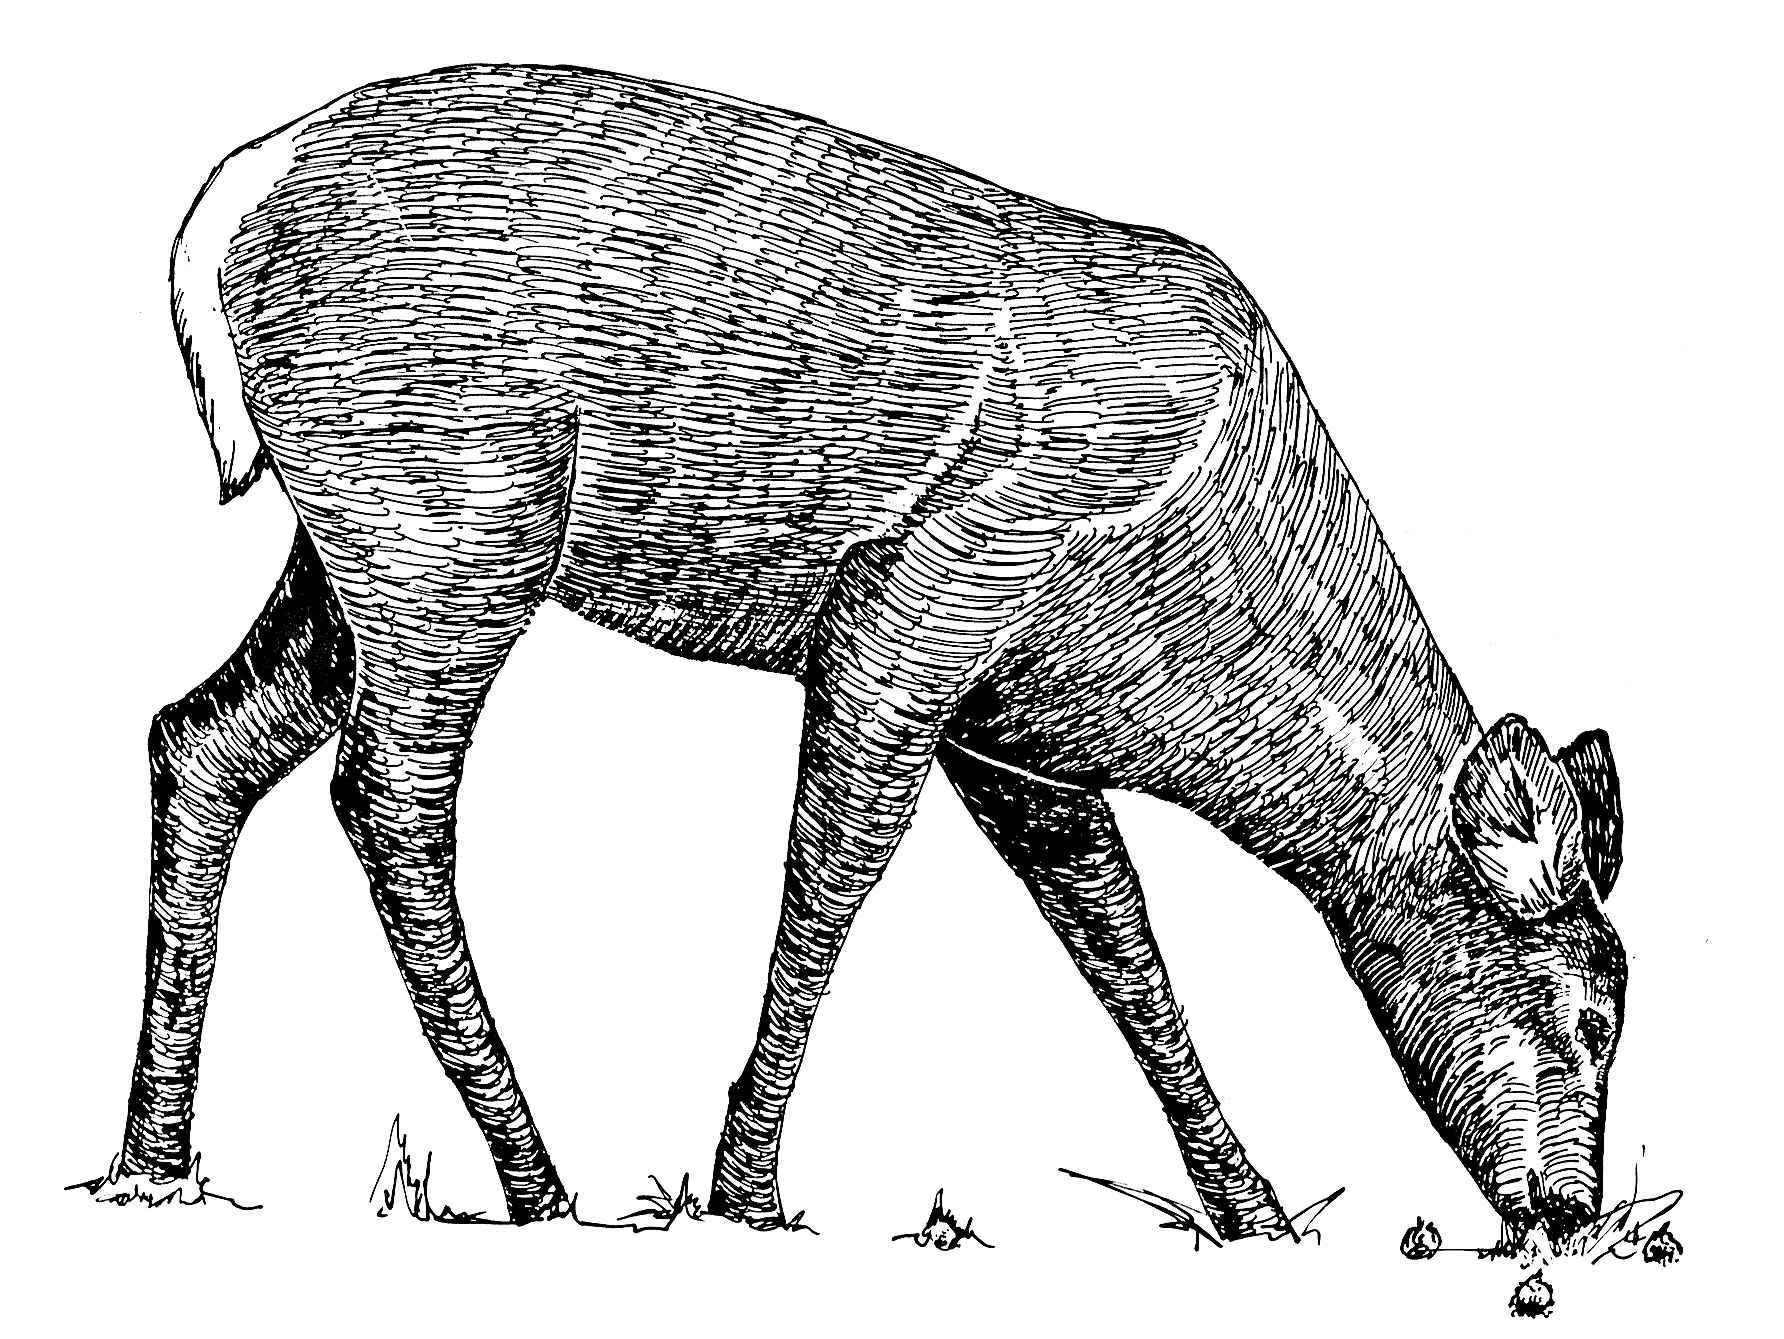 Line Drawings Of Animals Deer : File animal line art drawing g wikimedia commons